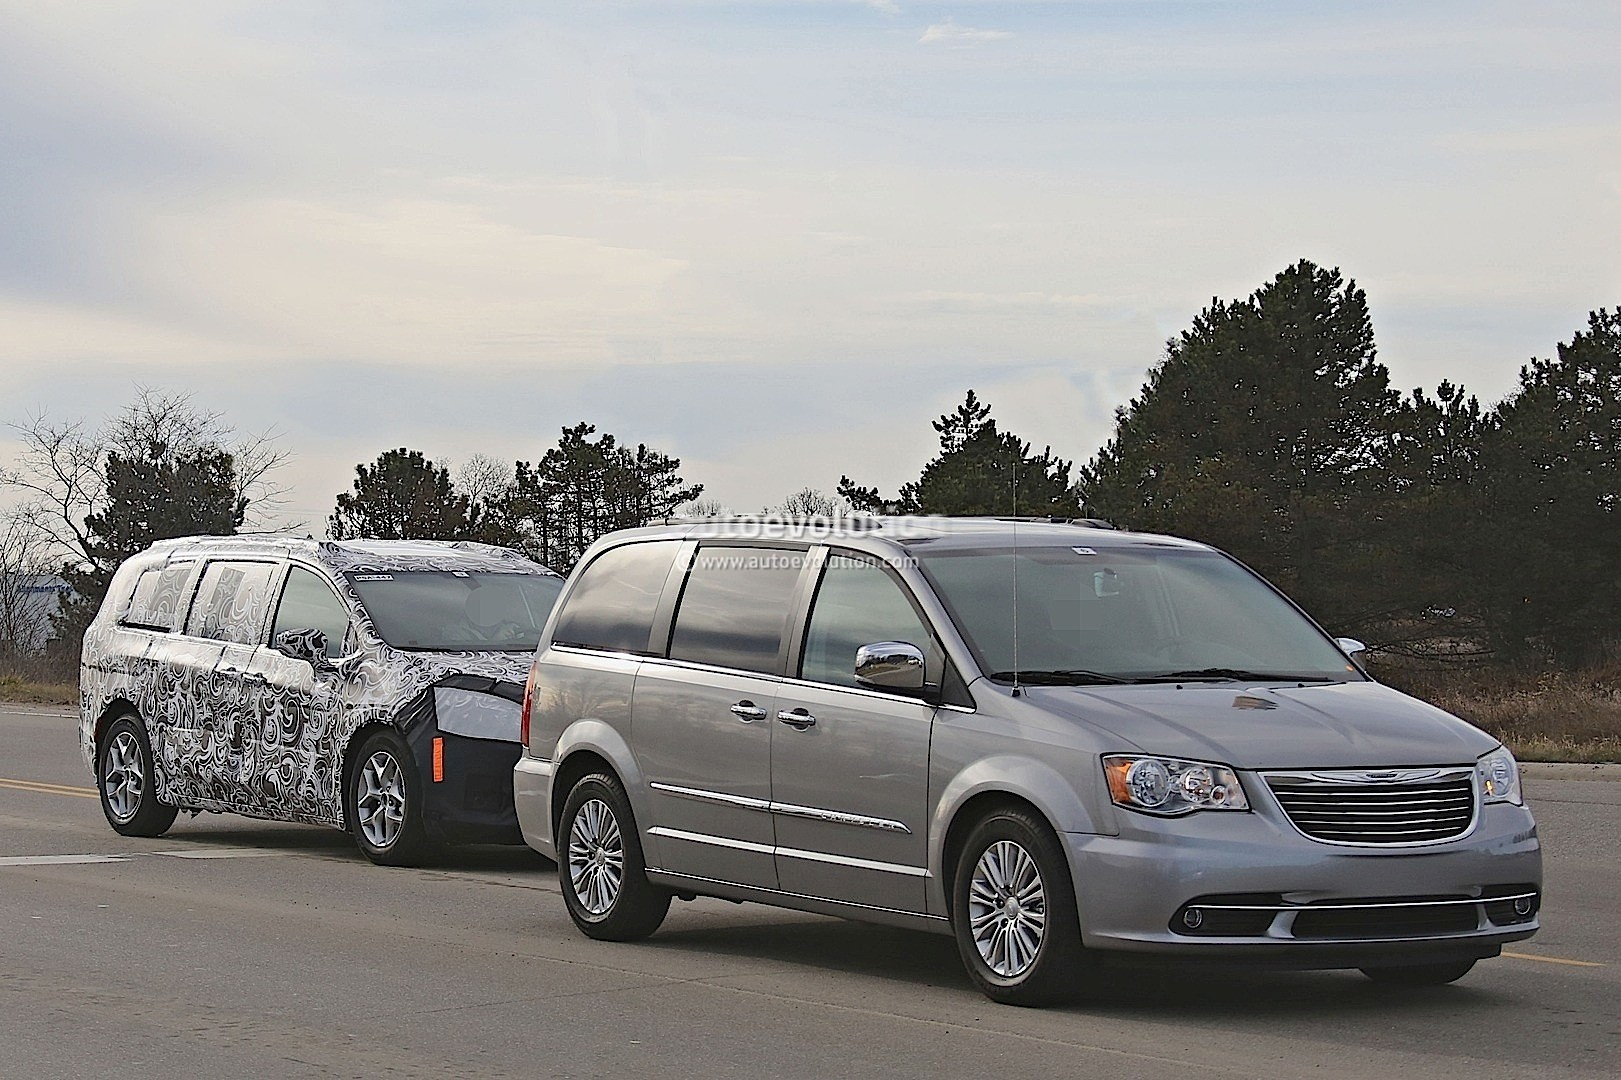 2017 Chrysler Town Amp Country Silhouette Revealed In Latest